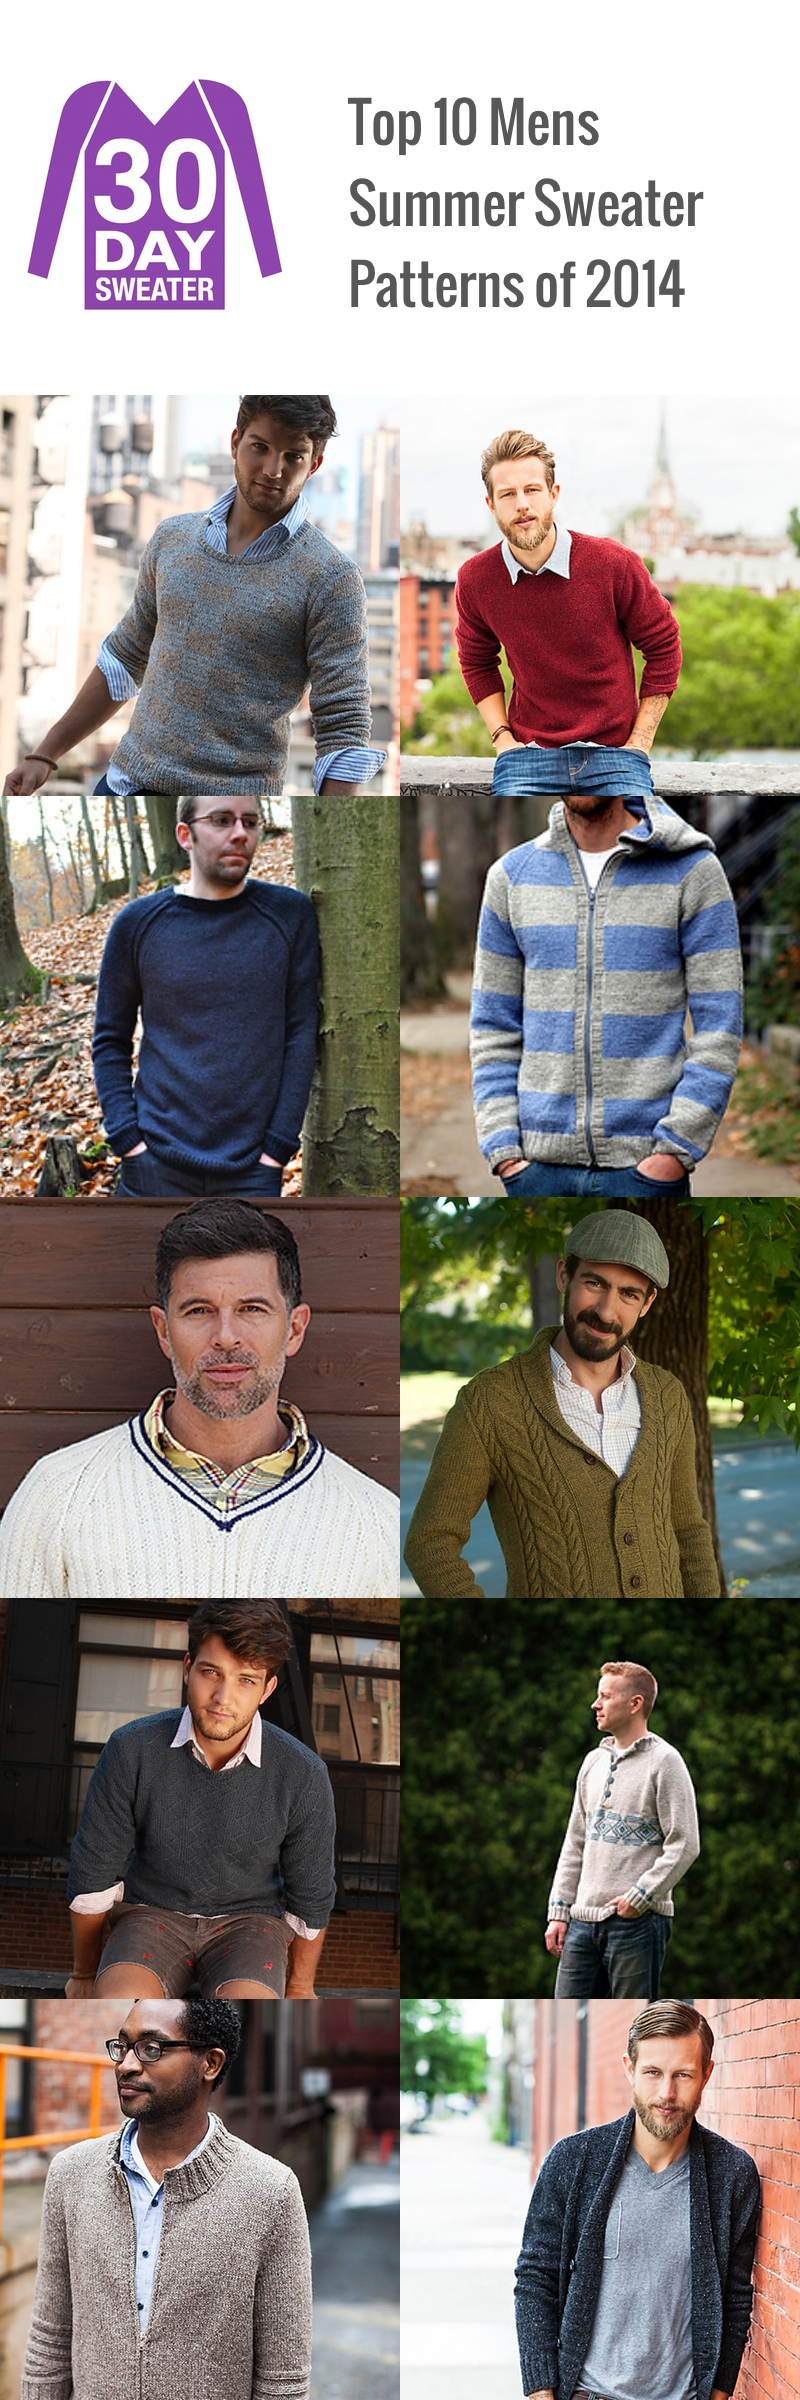 top10menssummersweaterpatterns